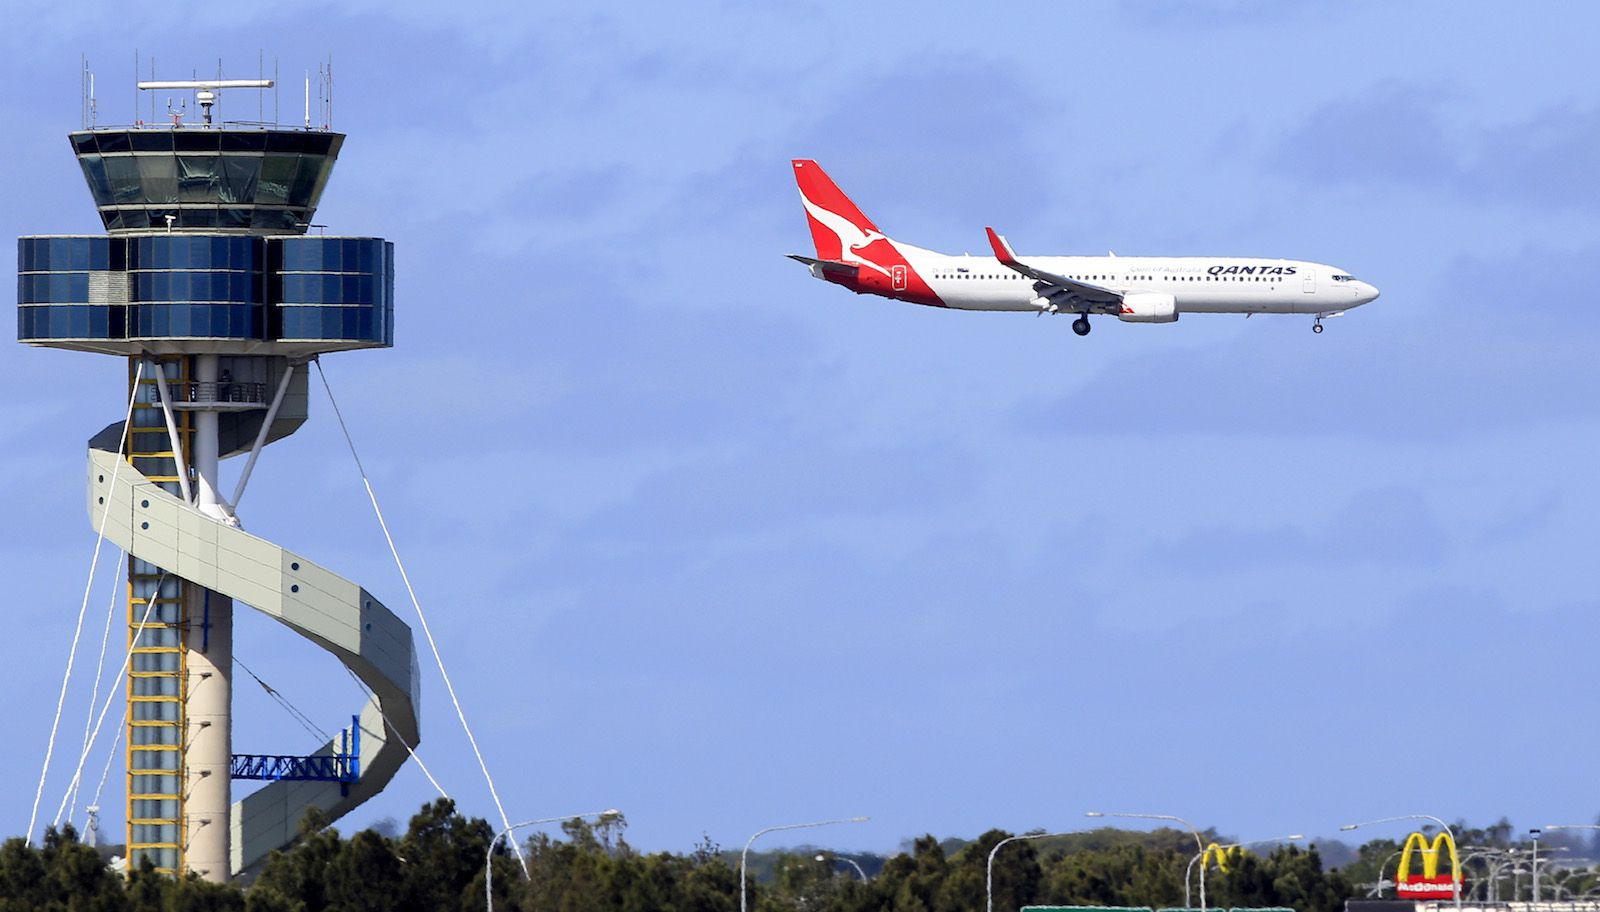 Australia's Qantas Airlines took the top spot as the world's most safest airline.